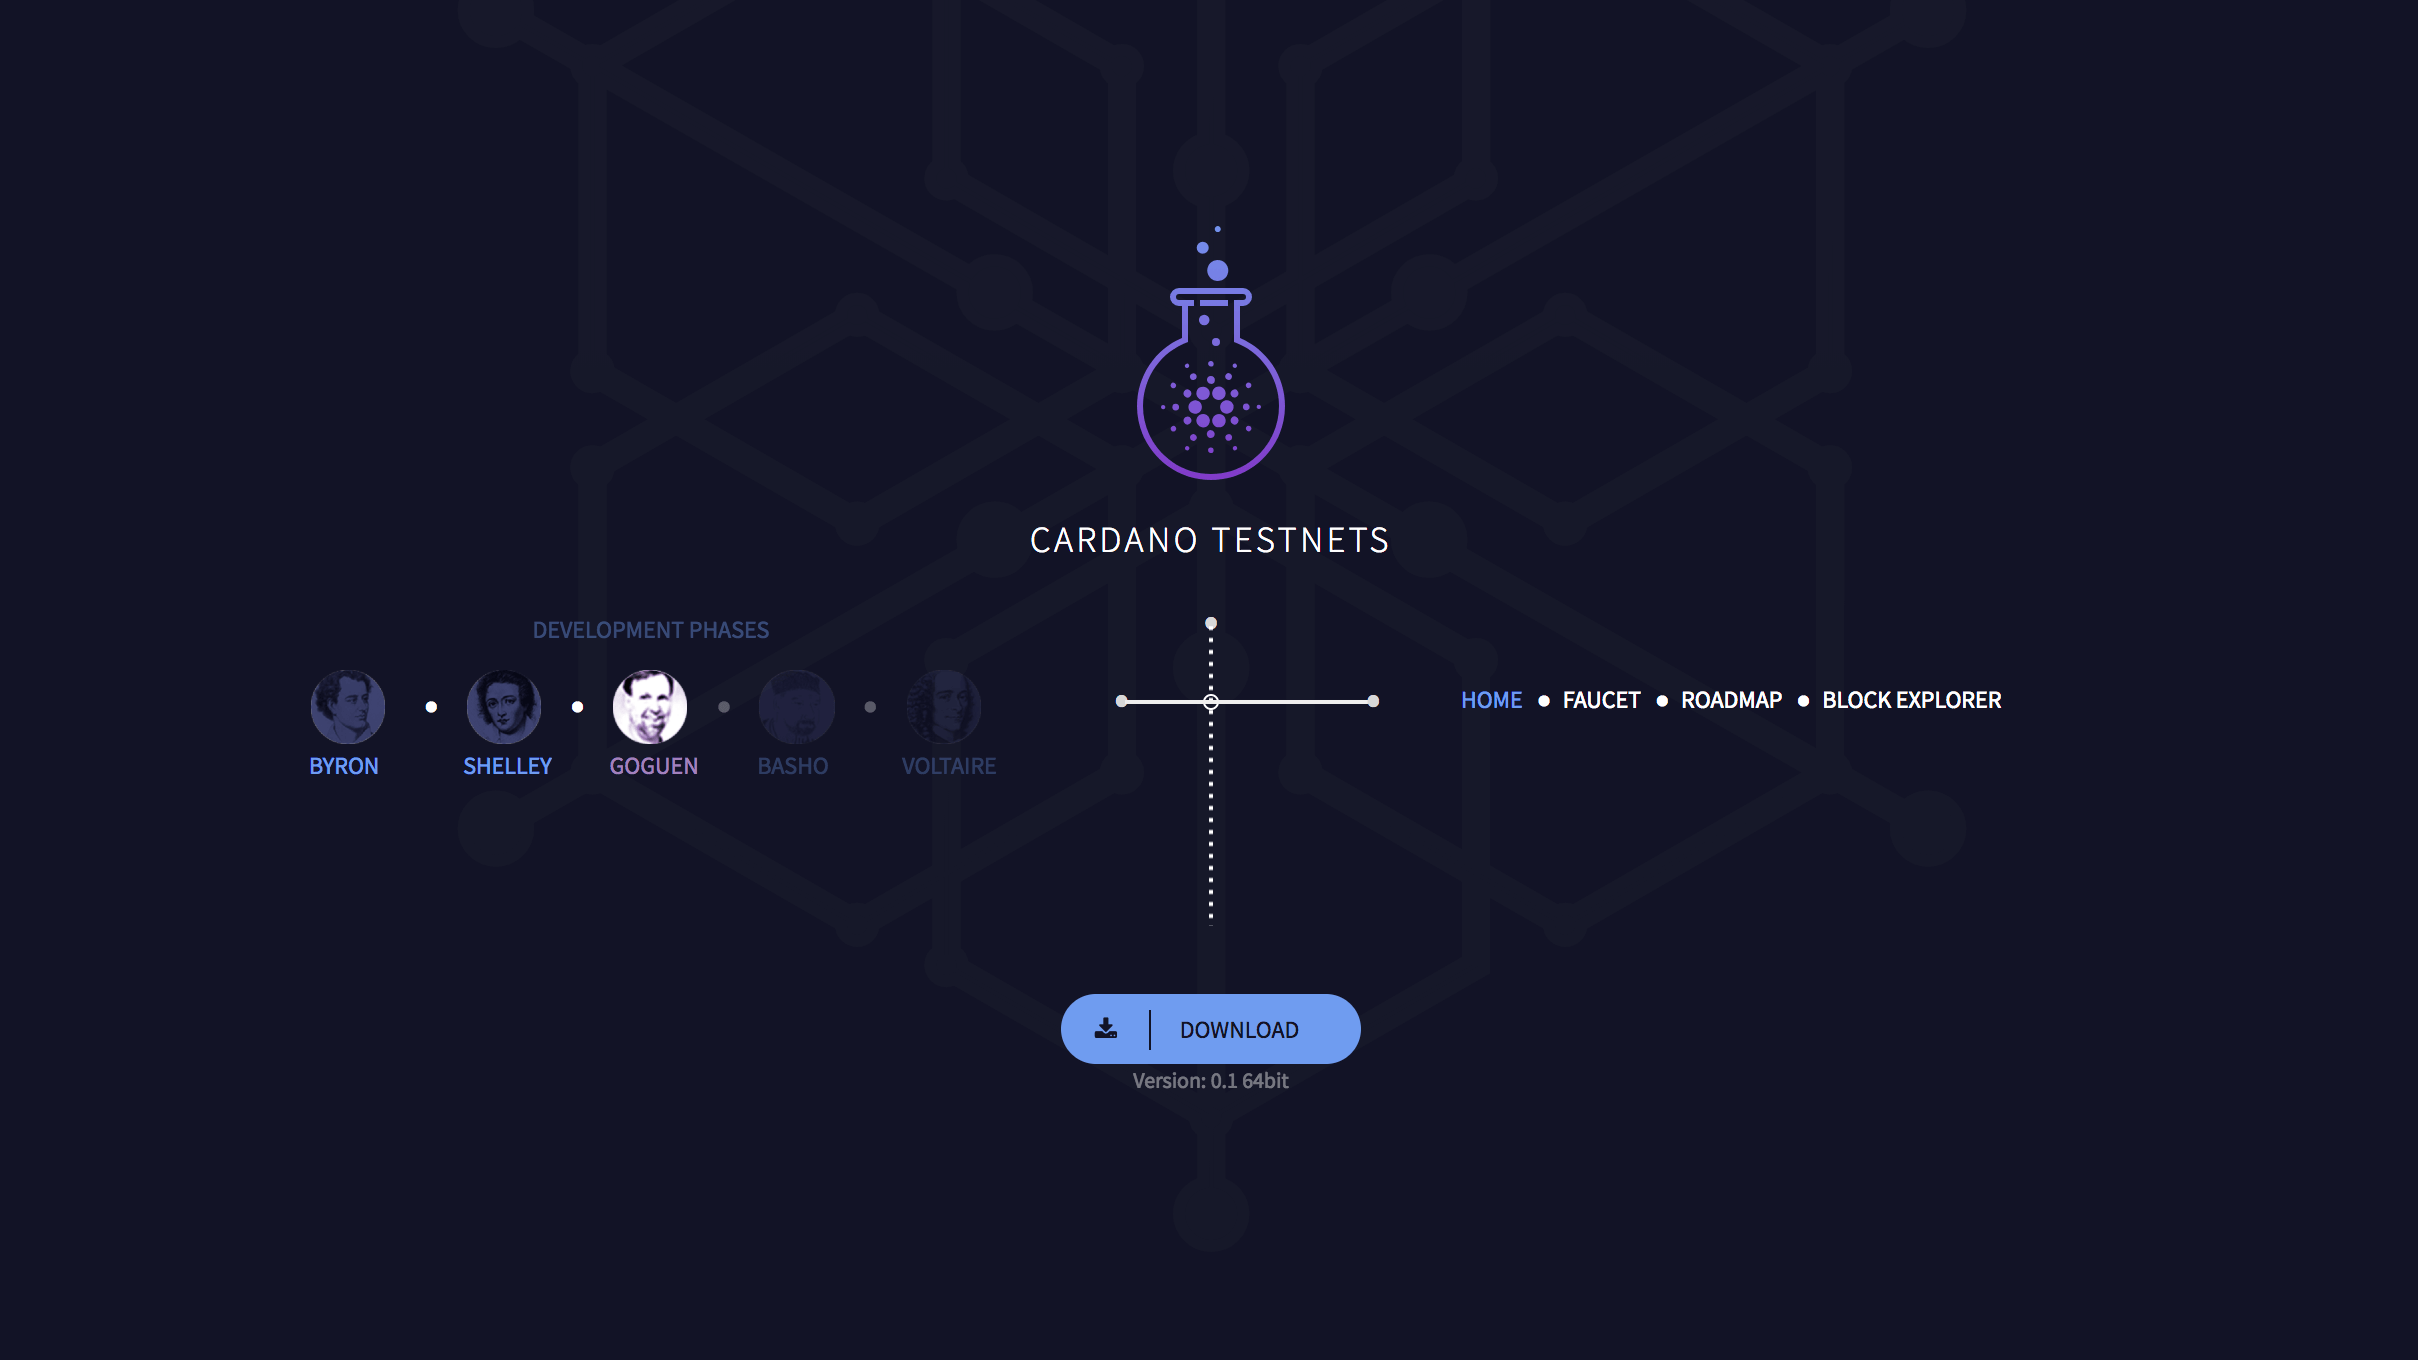 Cardano Testnets Website